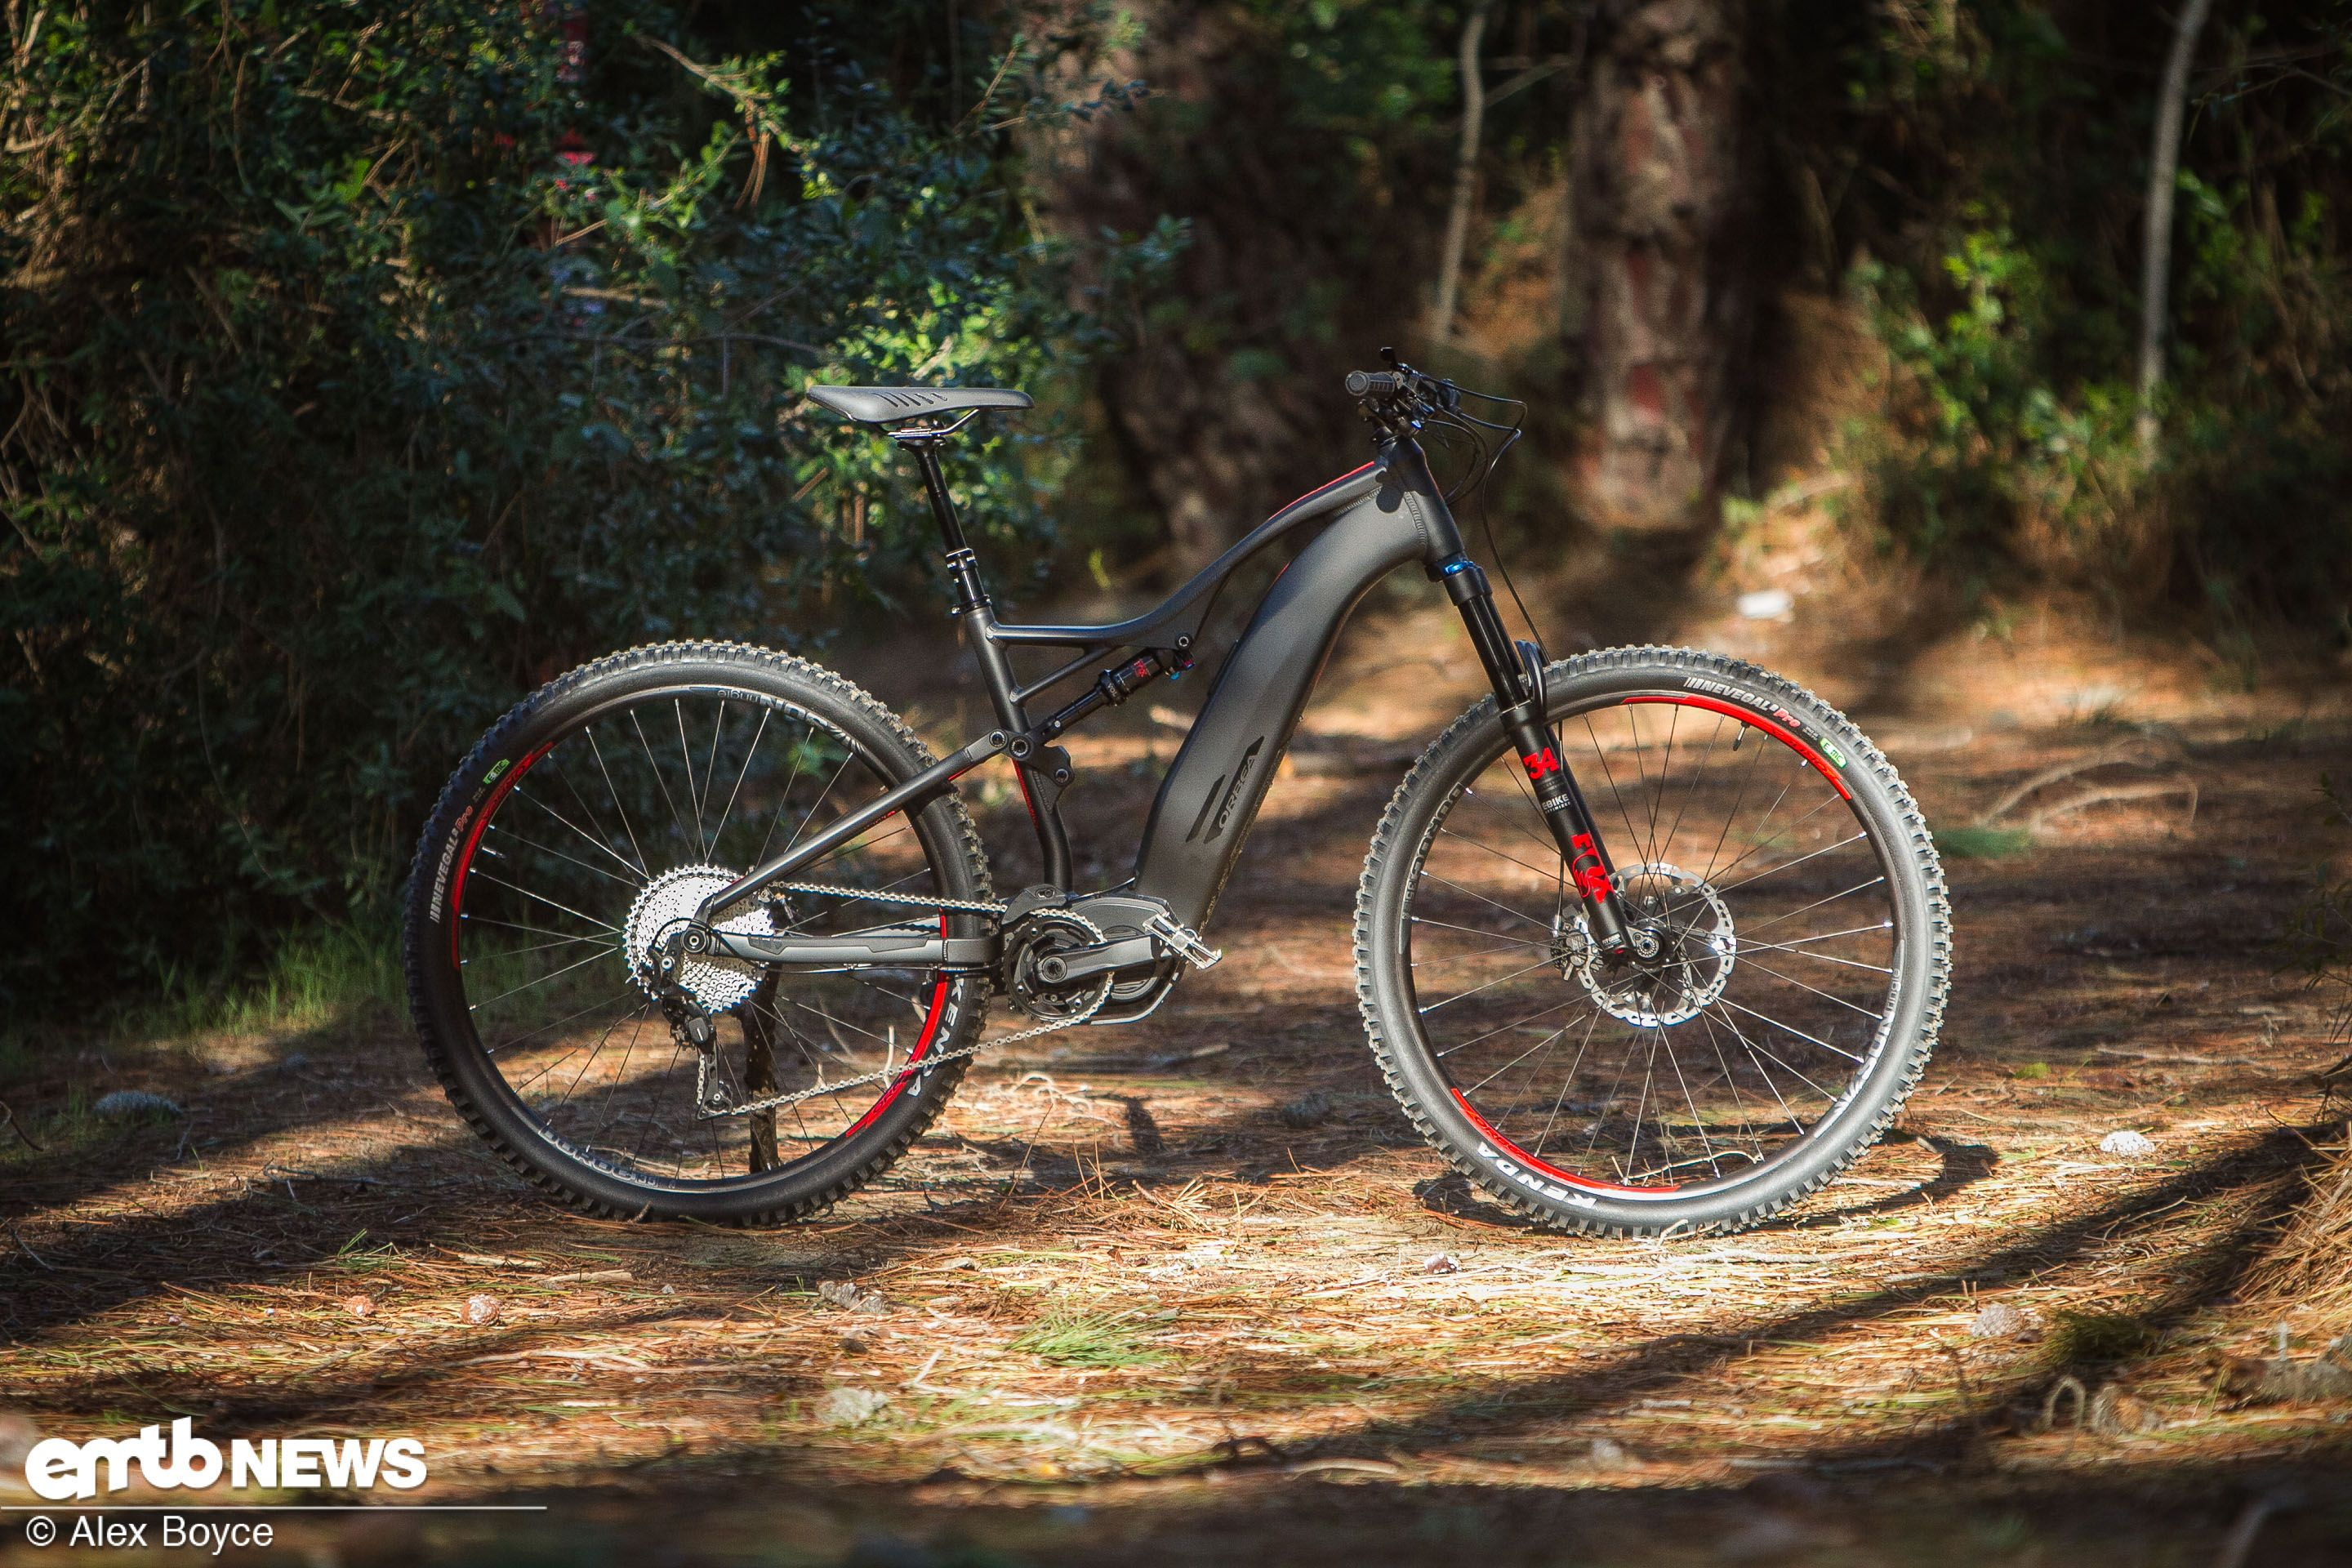 5ac992368c5921 Comfortable all-rounder - Orbea Wild FS 20 29S LR Tested  Orbea are known